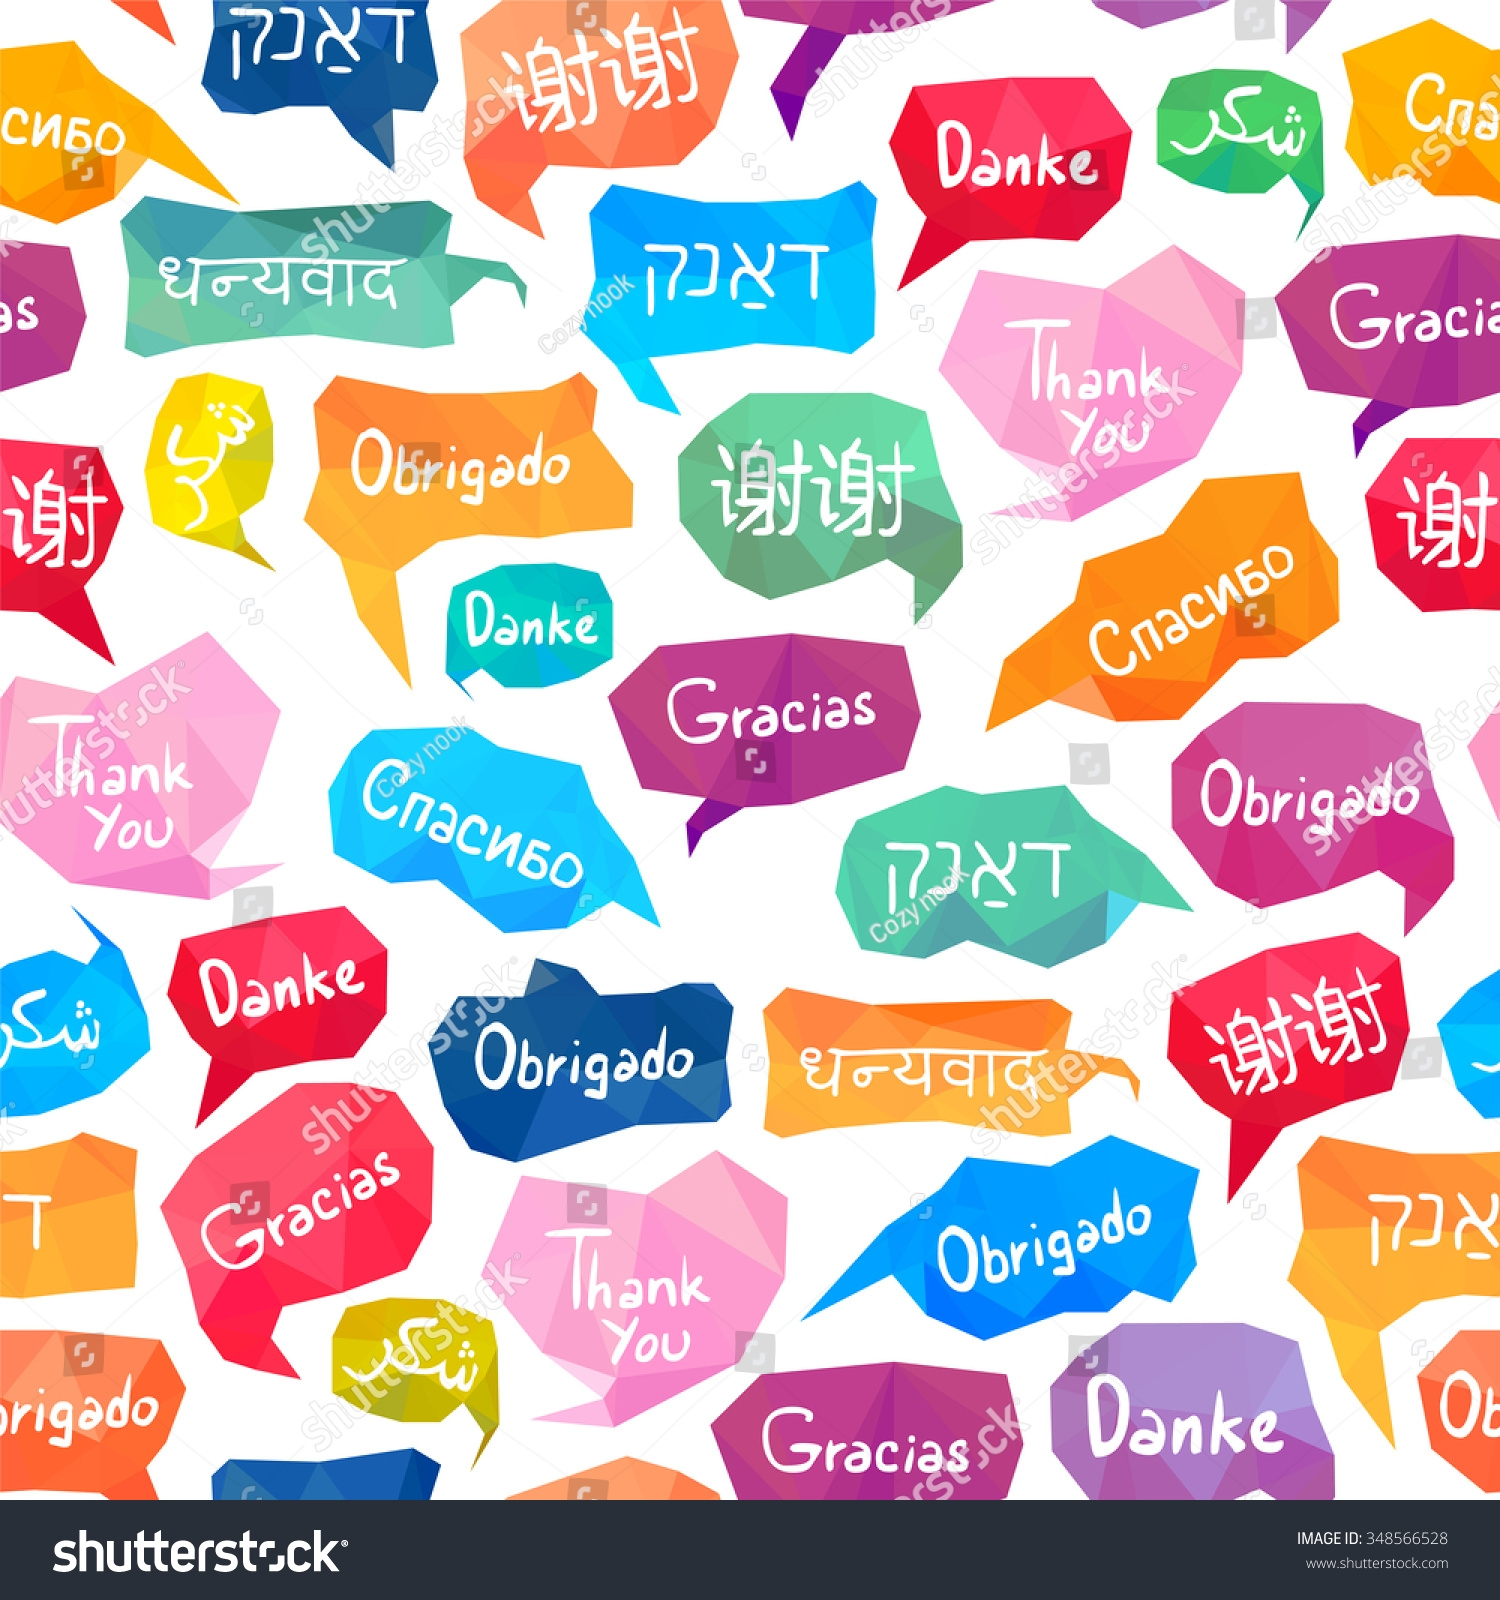 Thank You In Many Languages Clipart.